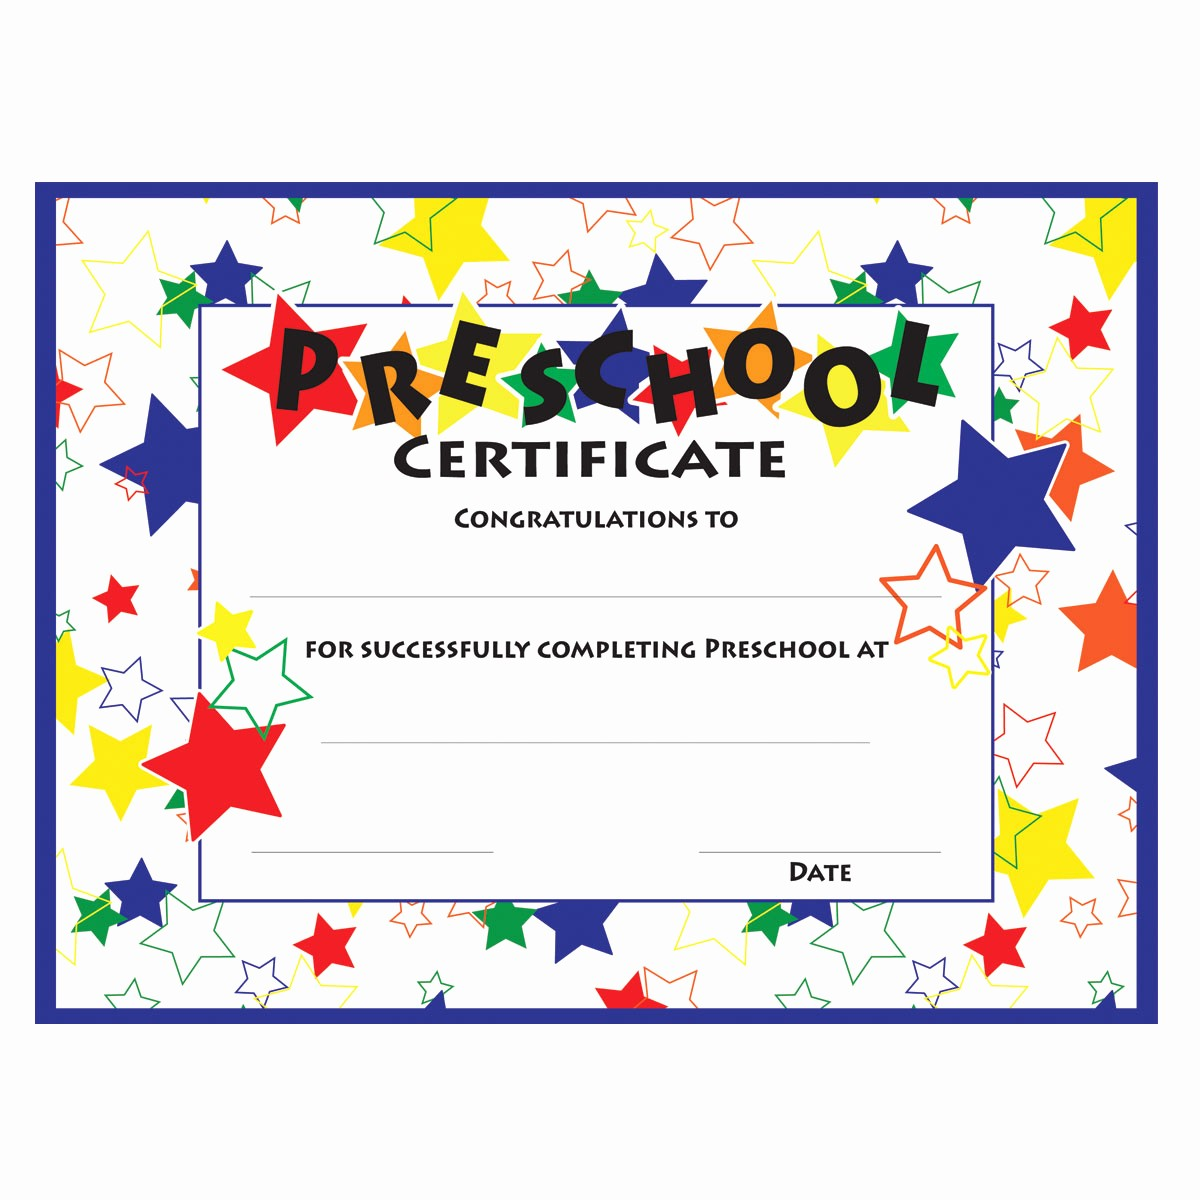 Preschool Diplomas Templates Printable Free Lovely 11 Preschool Certificate Templates Pdf